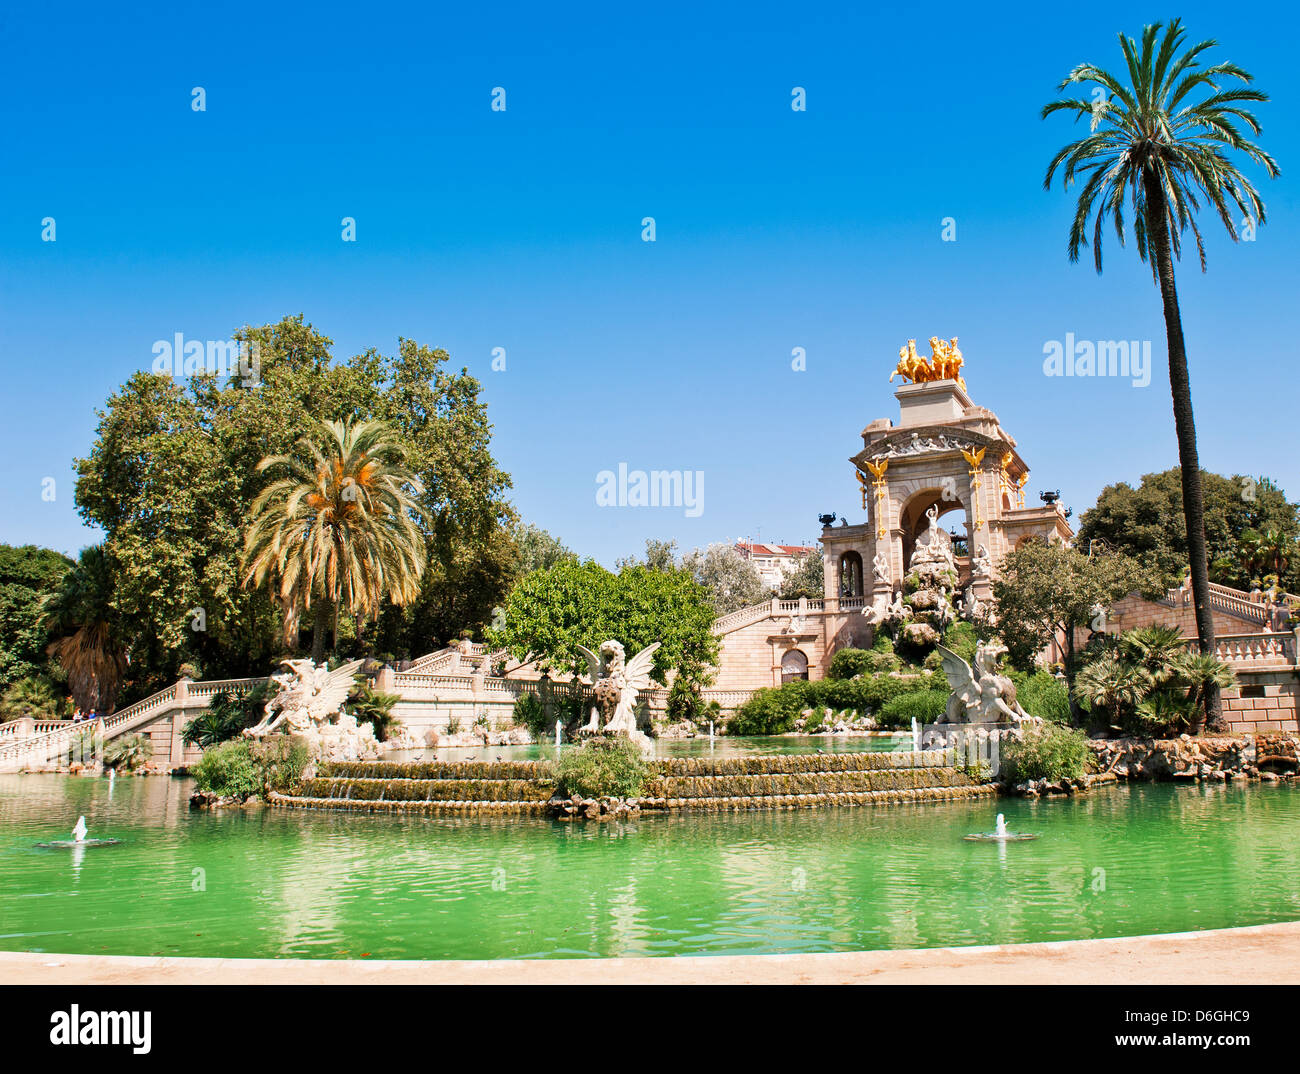 The Cascada (Waterfall) monument in Parc de la Ciutadella in Barcelona - Stock Image